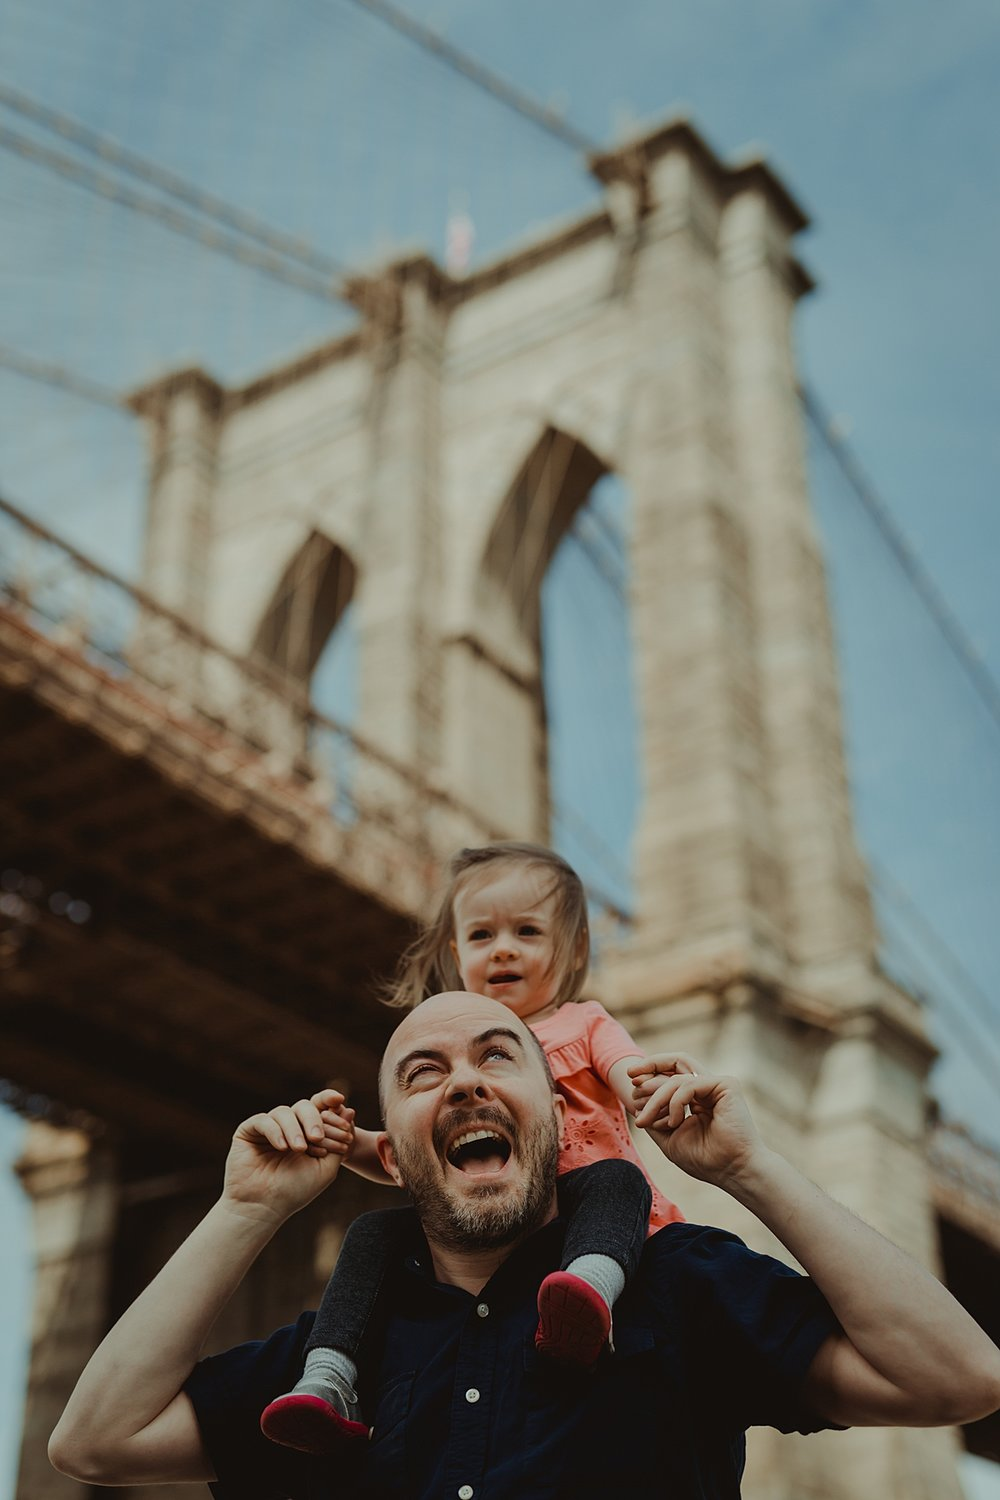 candid portrait of dad giving young daughter wearing pink shirt a shoulder ride with brooklyn bridge as the backdrop. photo by nyc family and newborn photographer krystil mcdowall